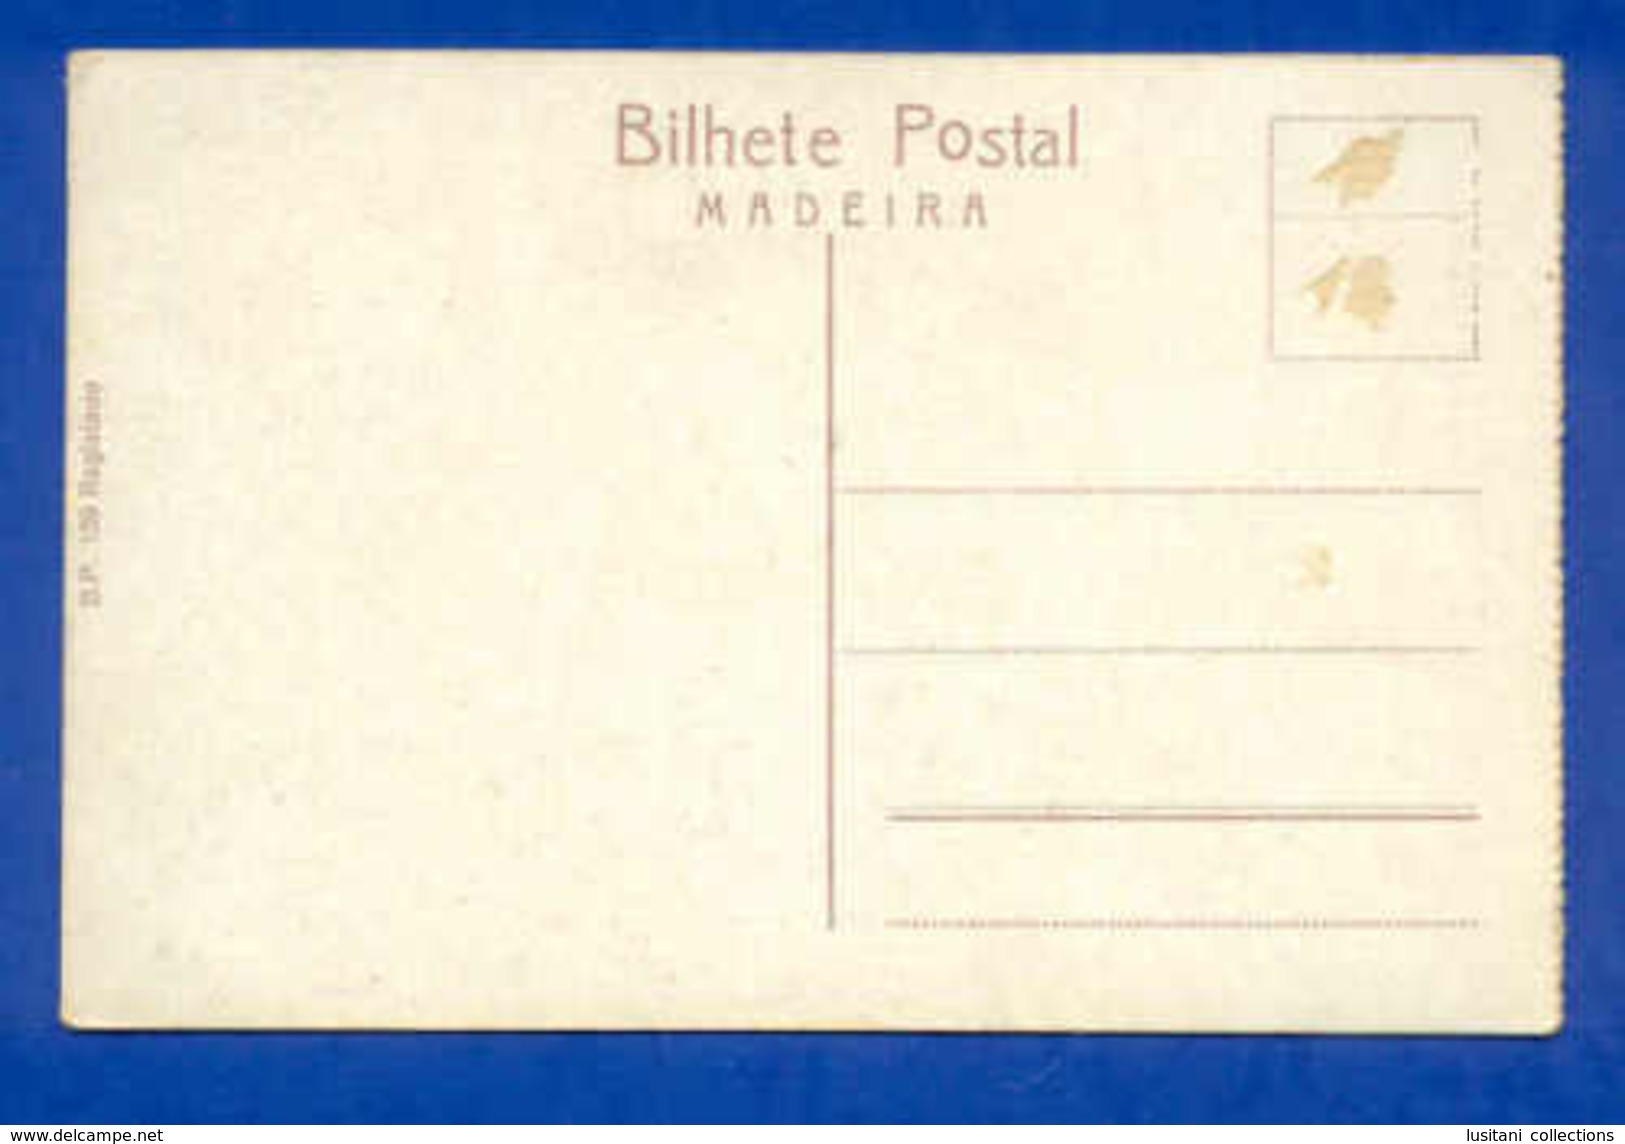 Postcard PORTUGAL 1910 MADEIRA Typical Transport & LADY - Postcards